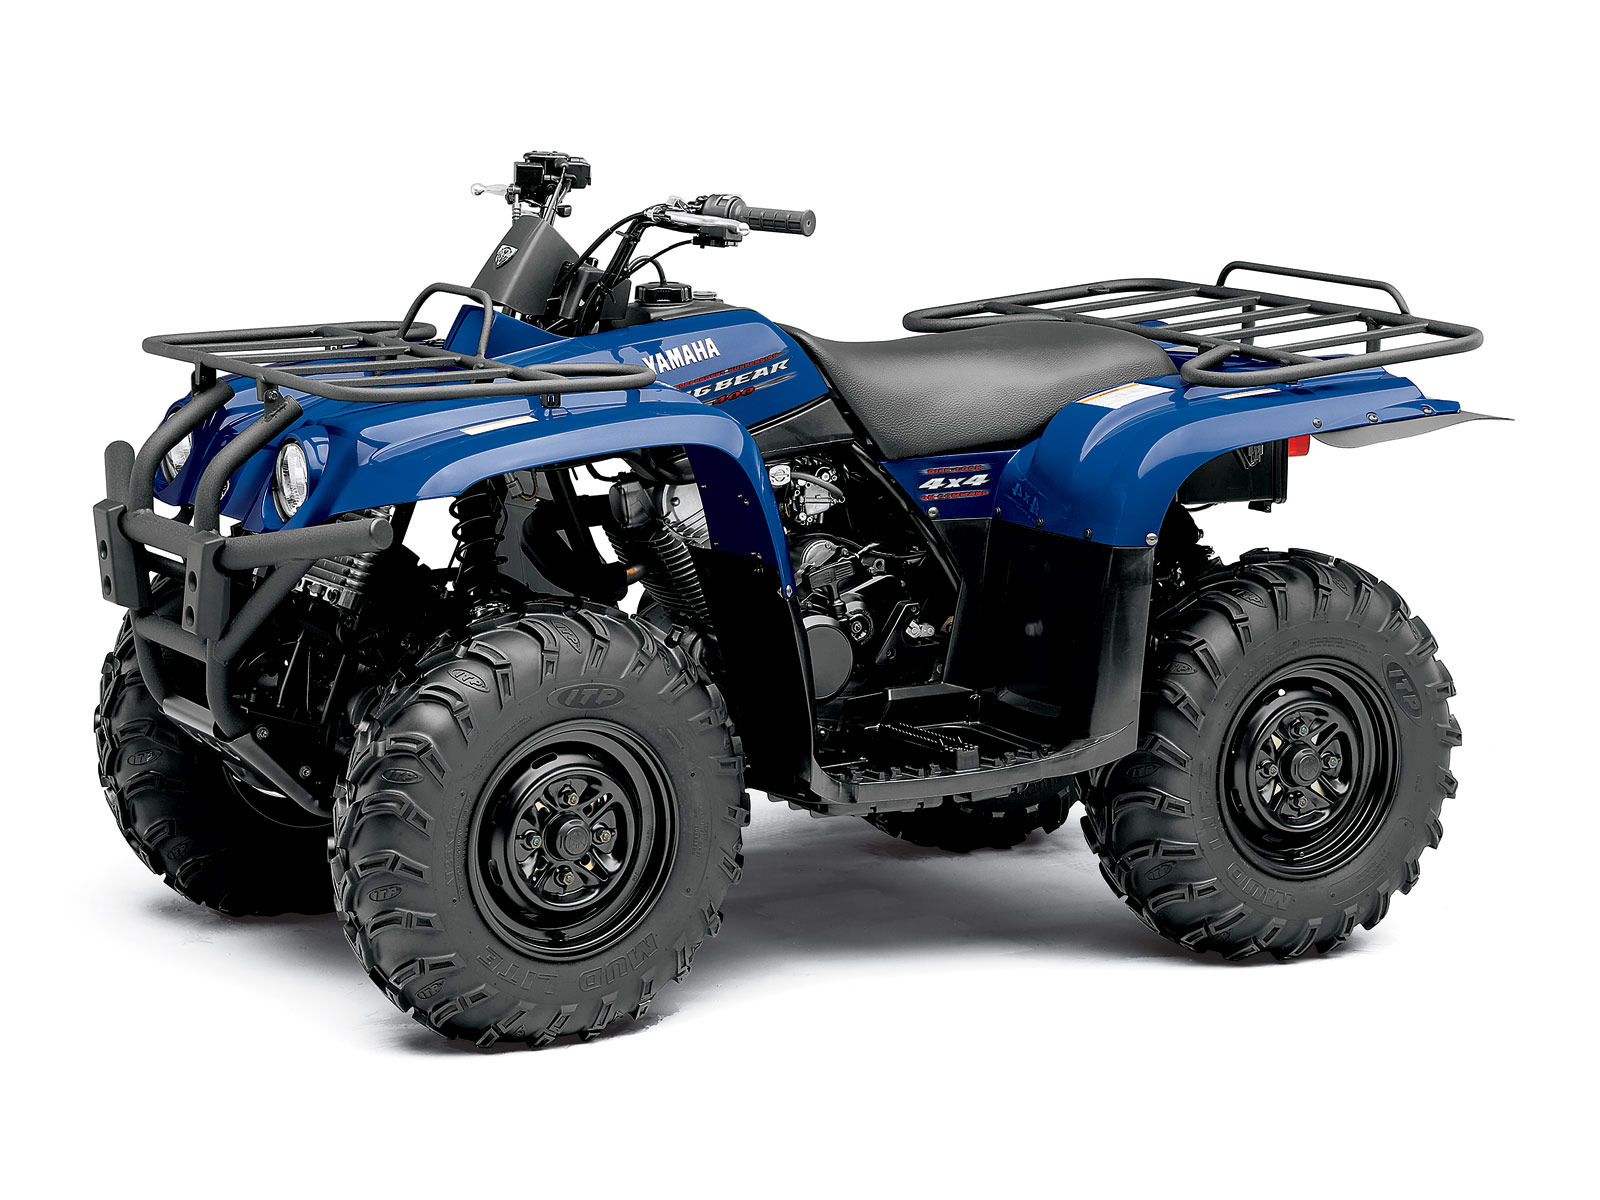 yamaha big bear 400 atv pictures 2010 accident lawyers. Black Bedroom Furniture Sets. Home Design Ideas